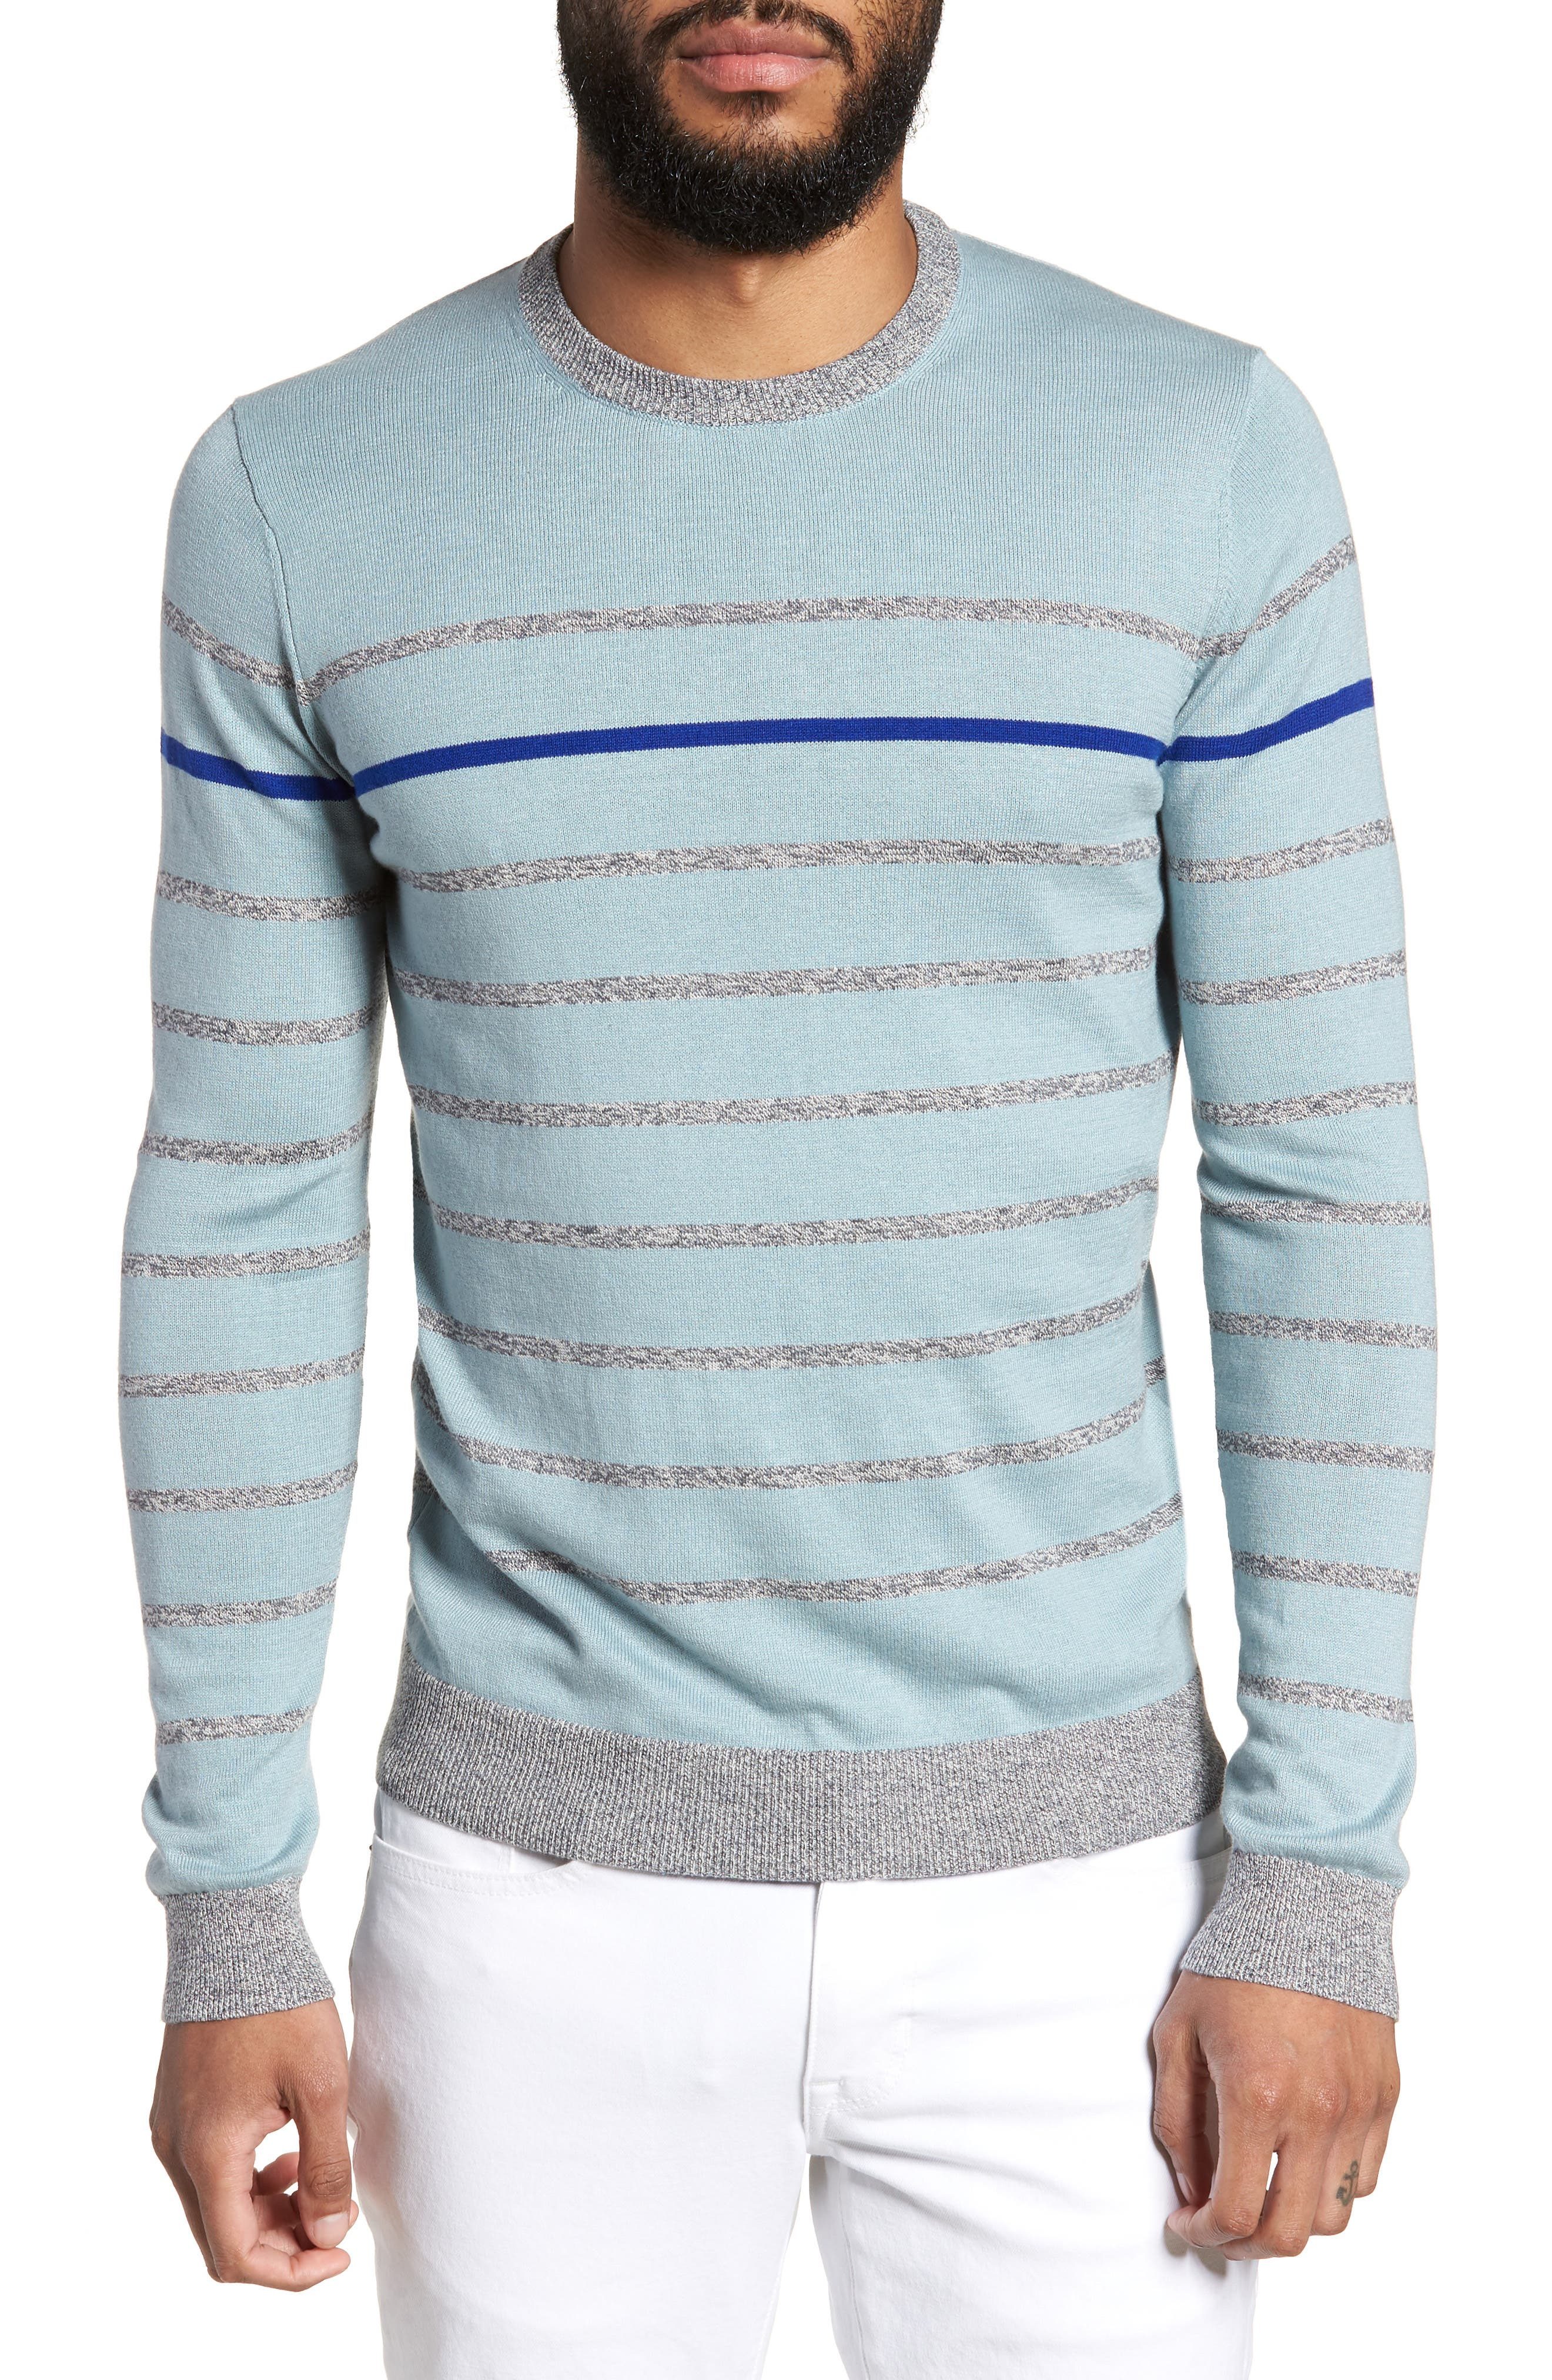 Britnay Trim Fit Stripe Crewneck Sweater,                         Main,                         color, Blue